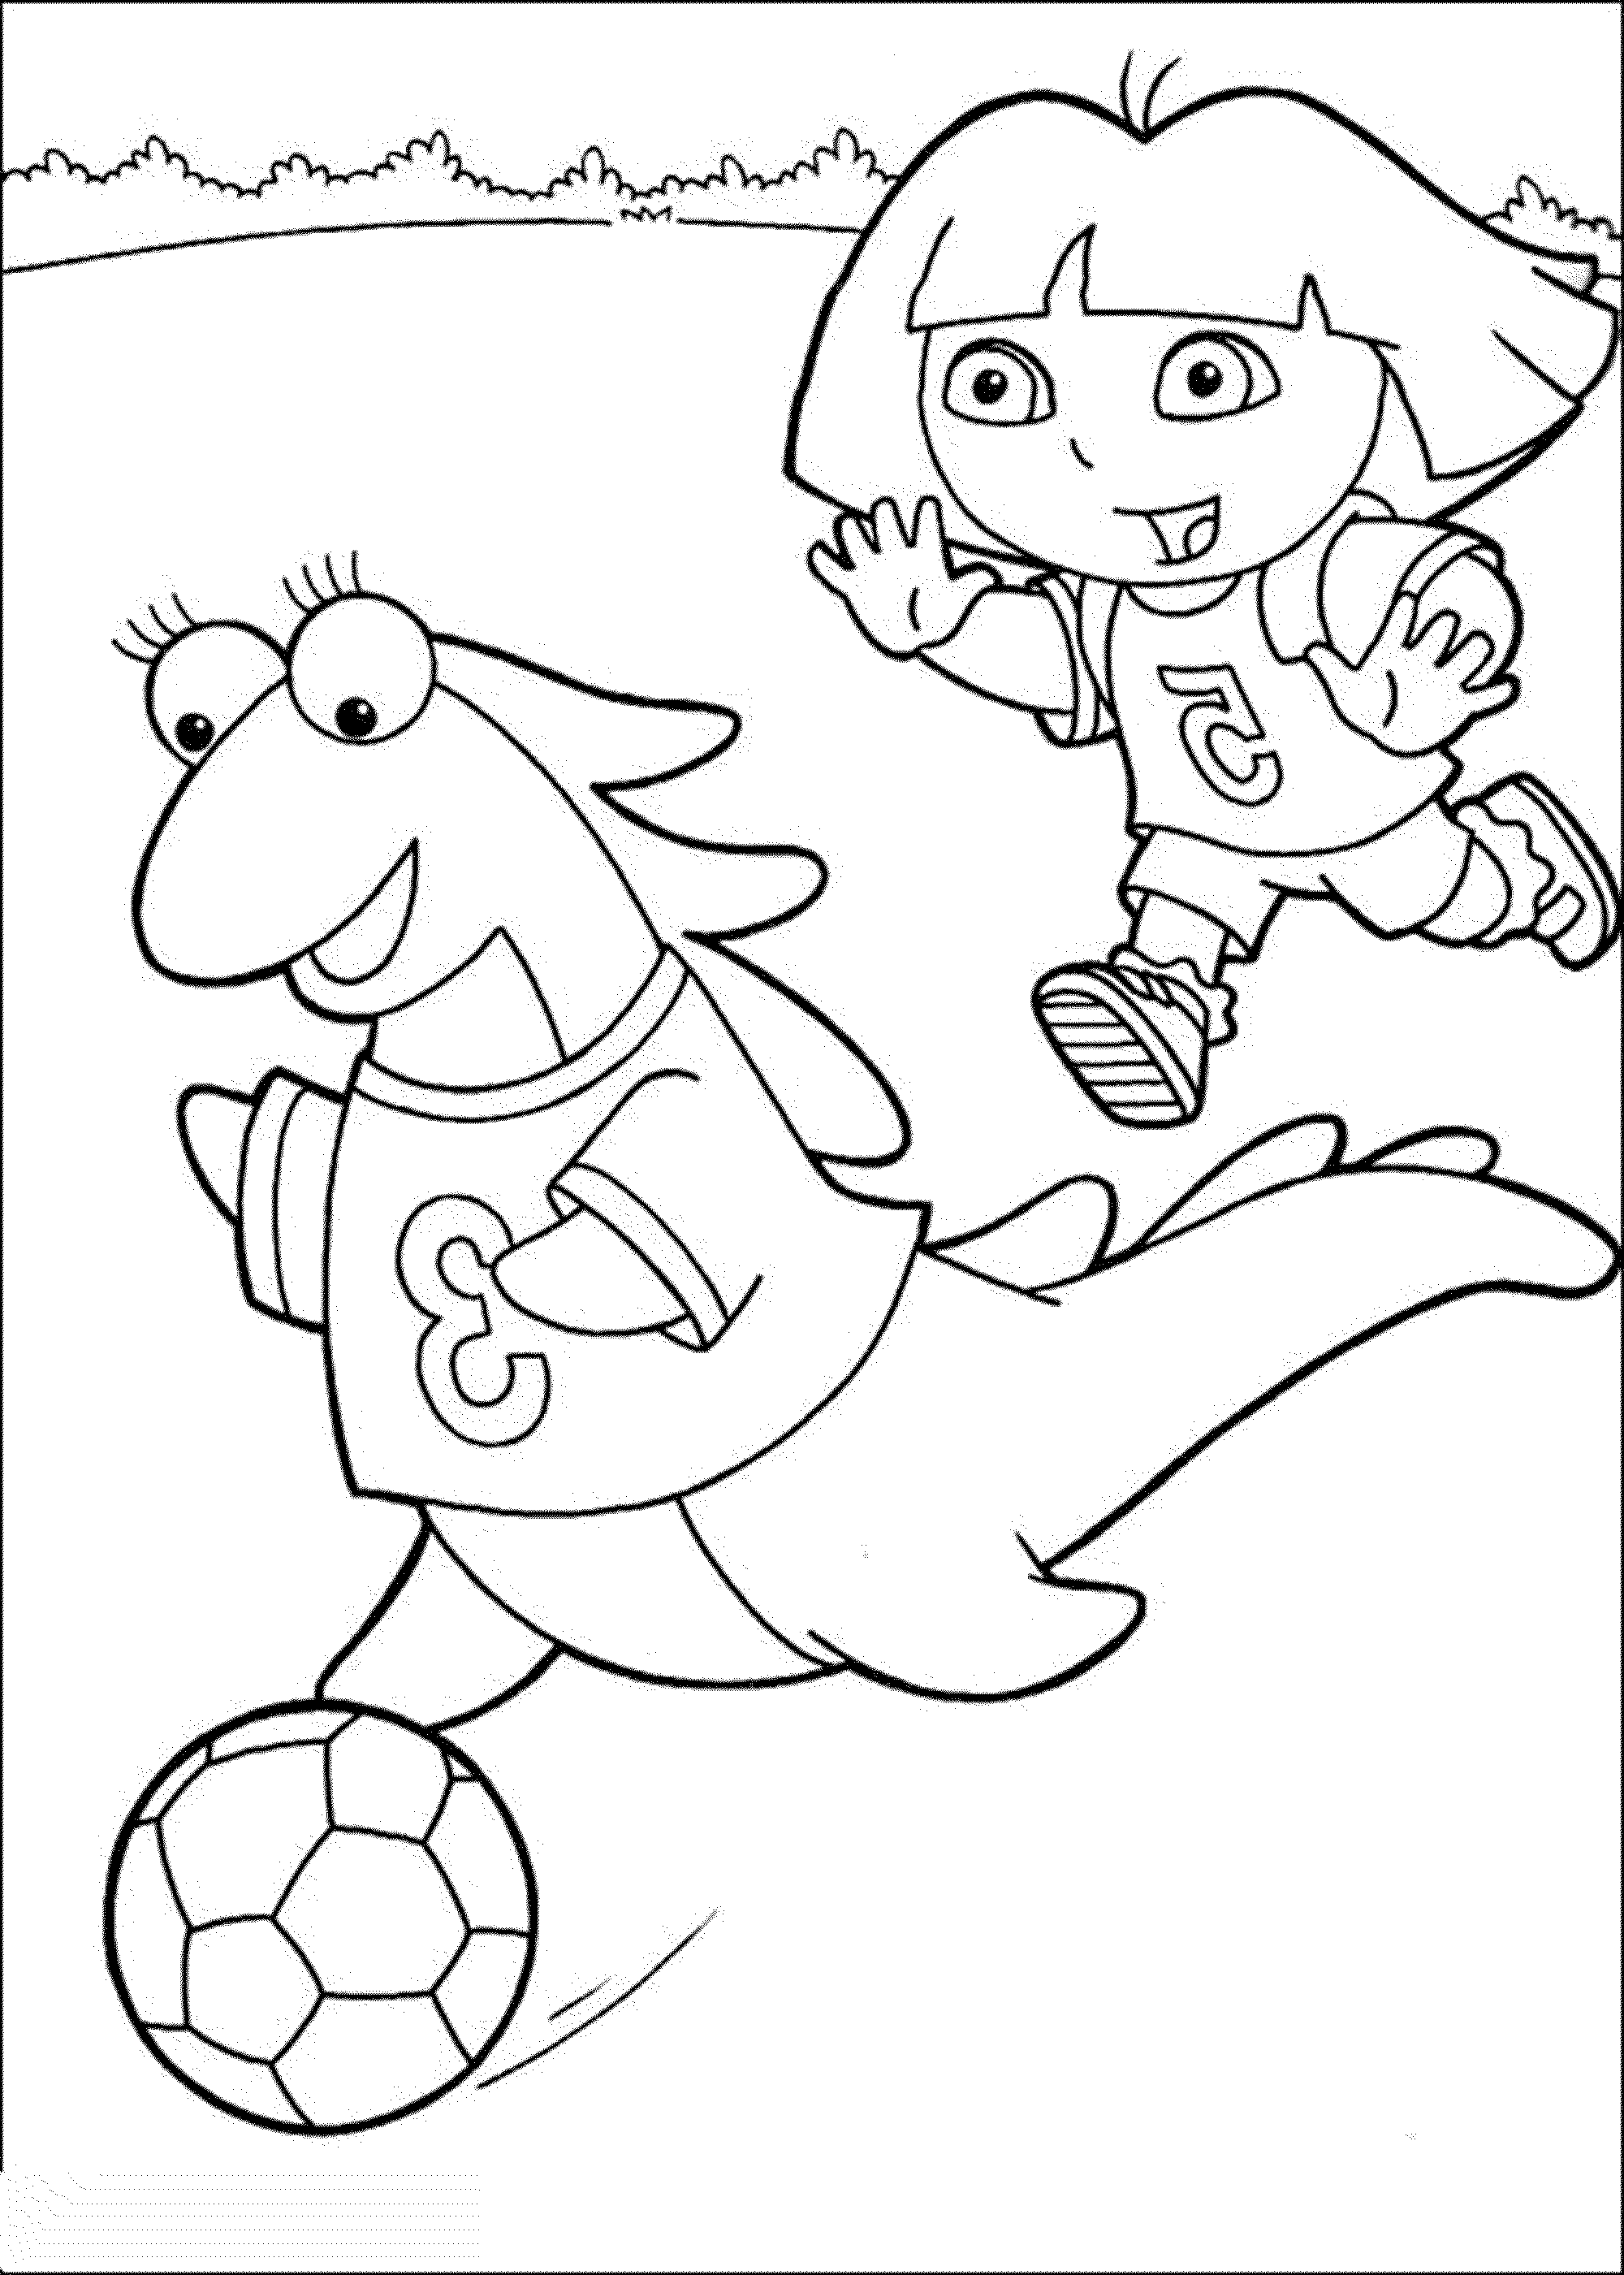 dora coloring pictures dora coloring pages diego coloring pages coloring pictures dora